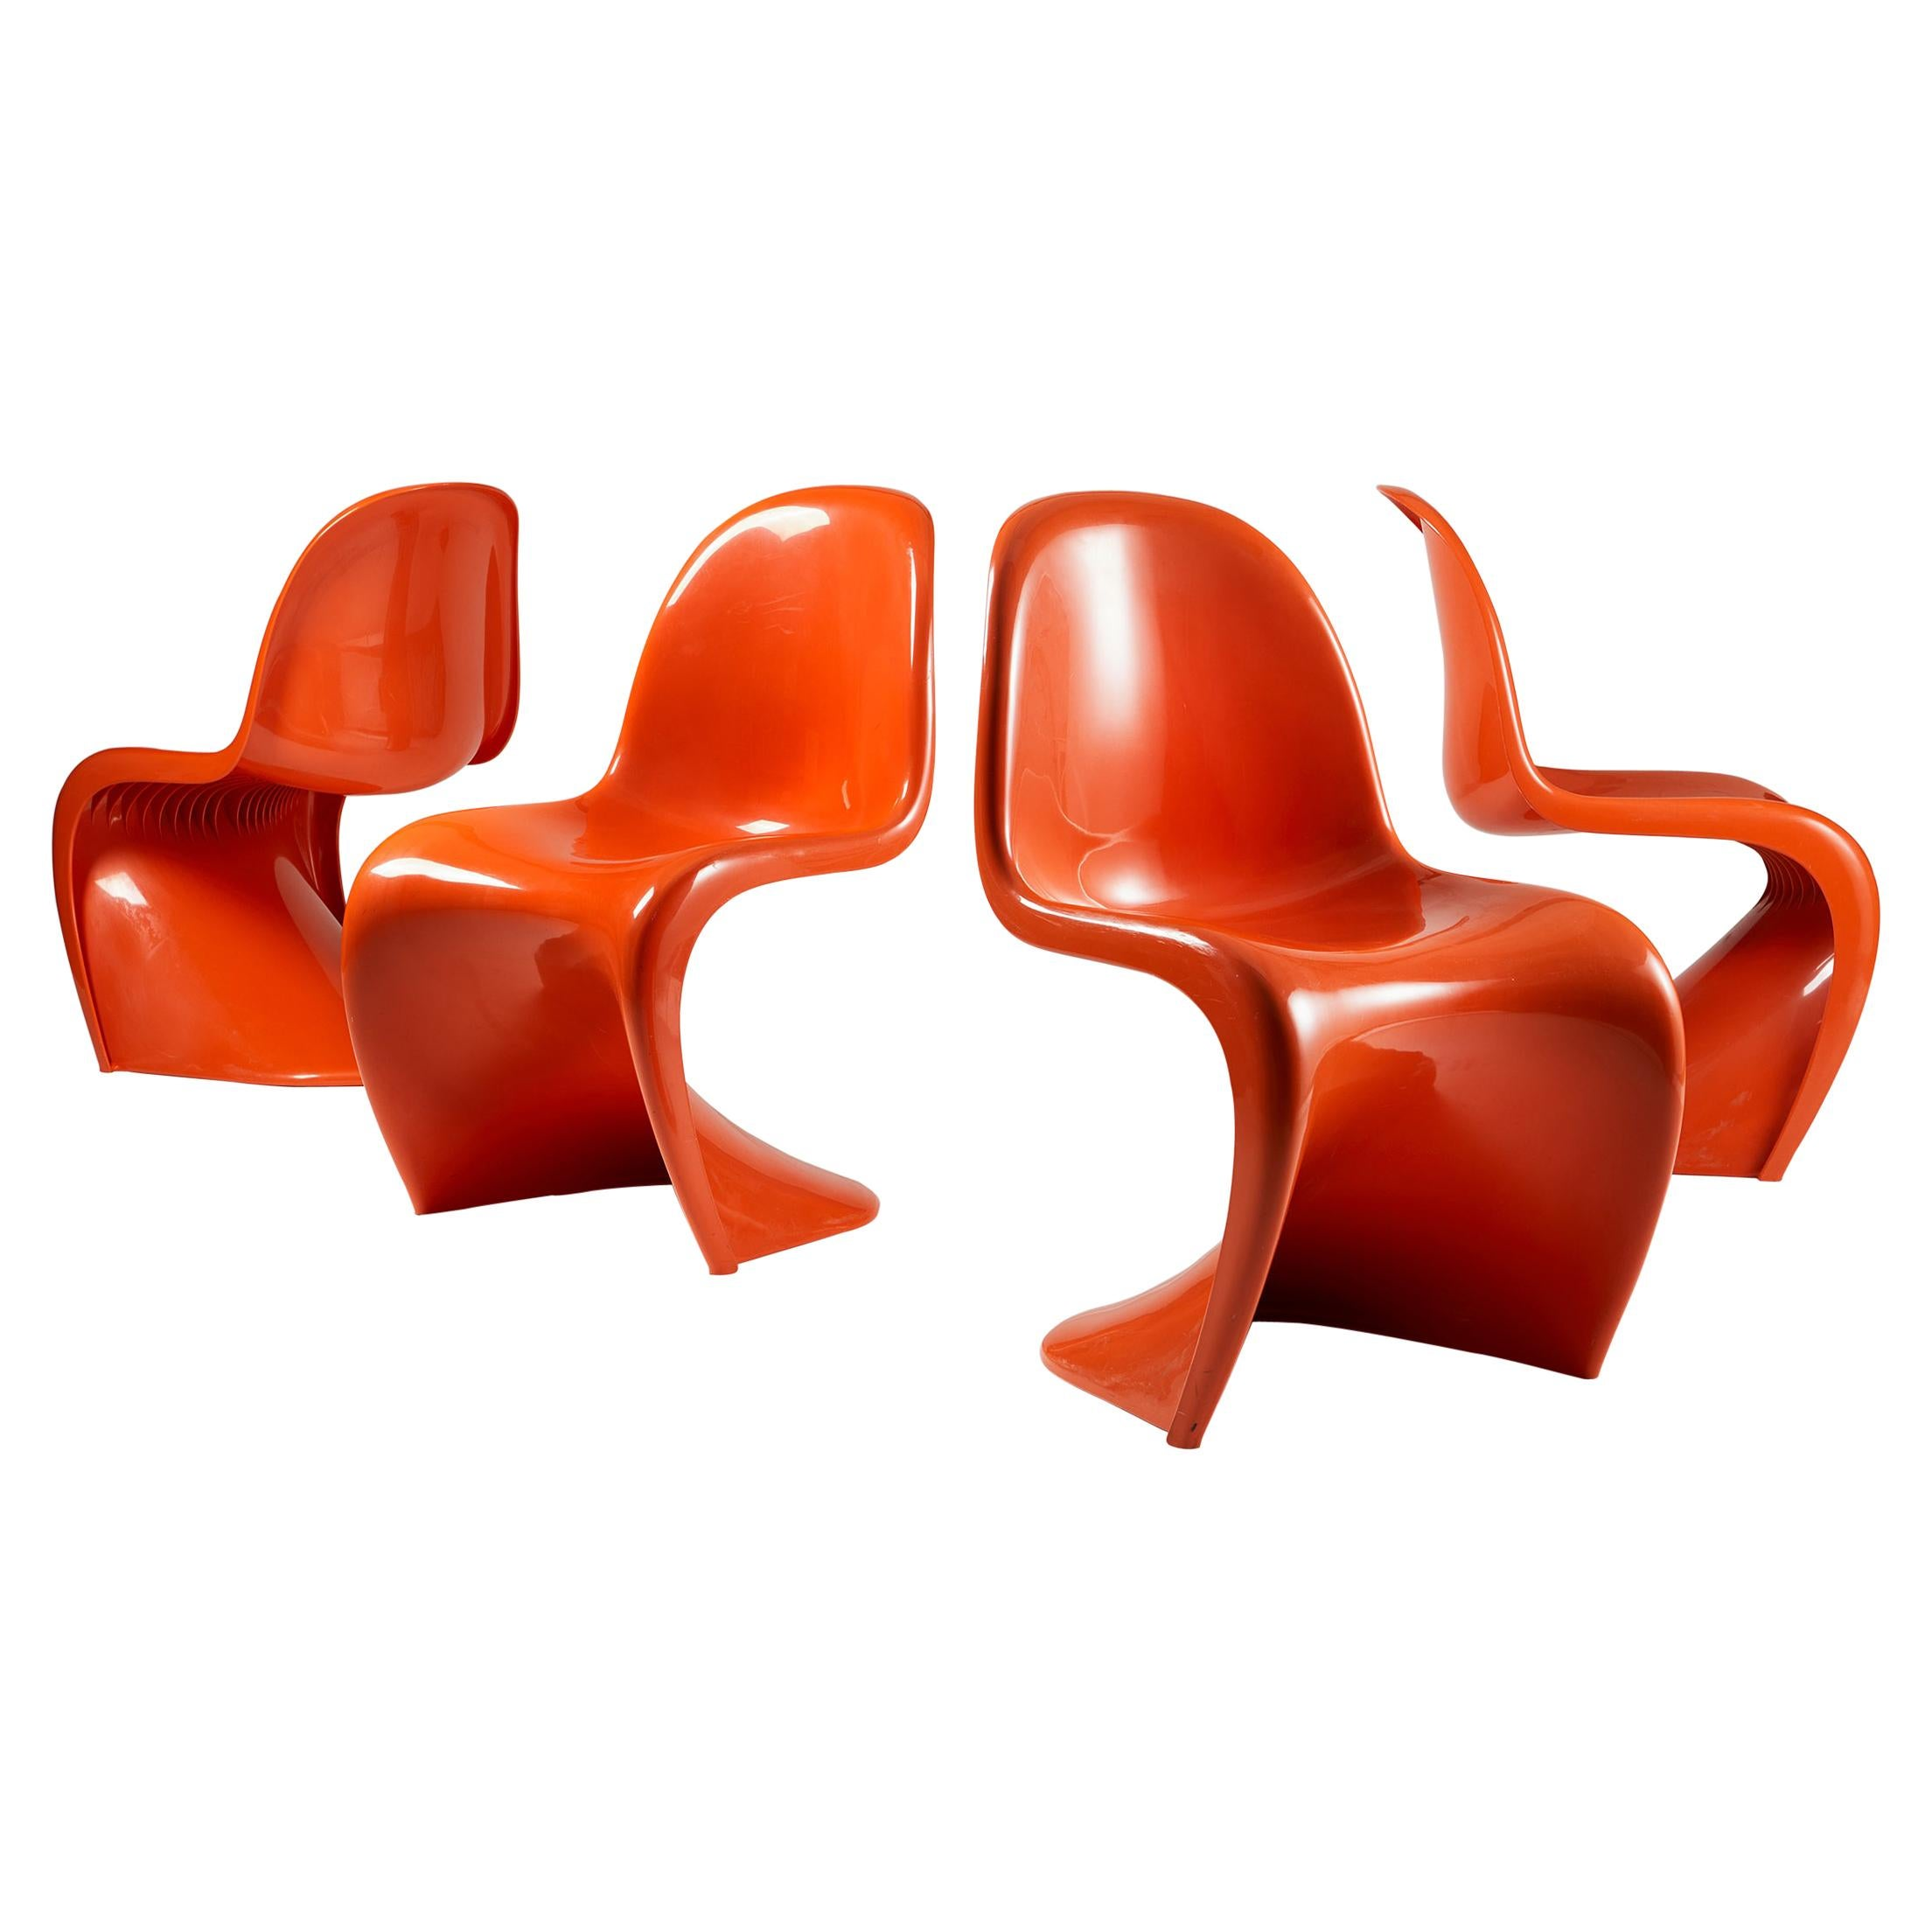 Set of Four Chairs, Designed by Verner Panton for Herman Miller, Usa, 1960s